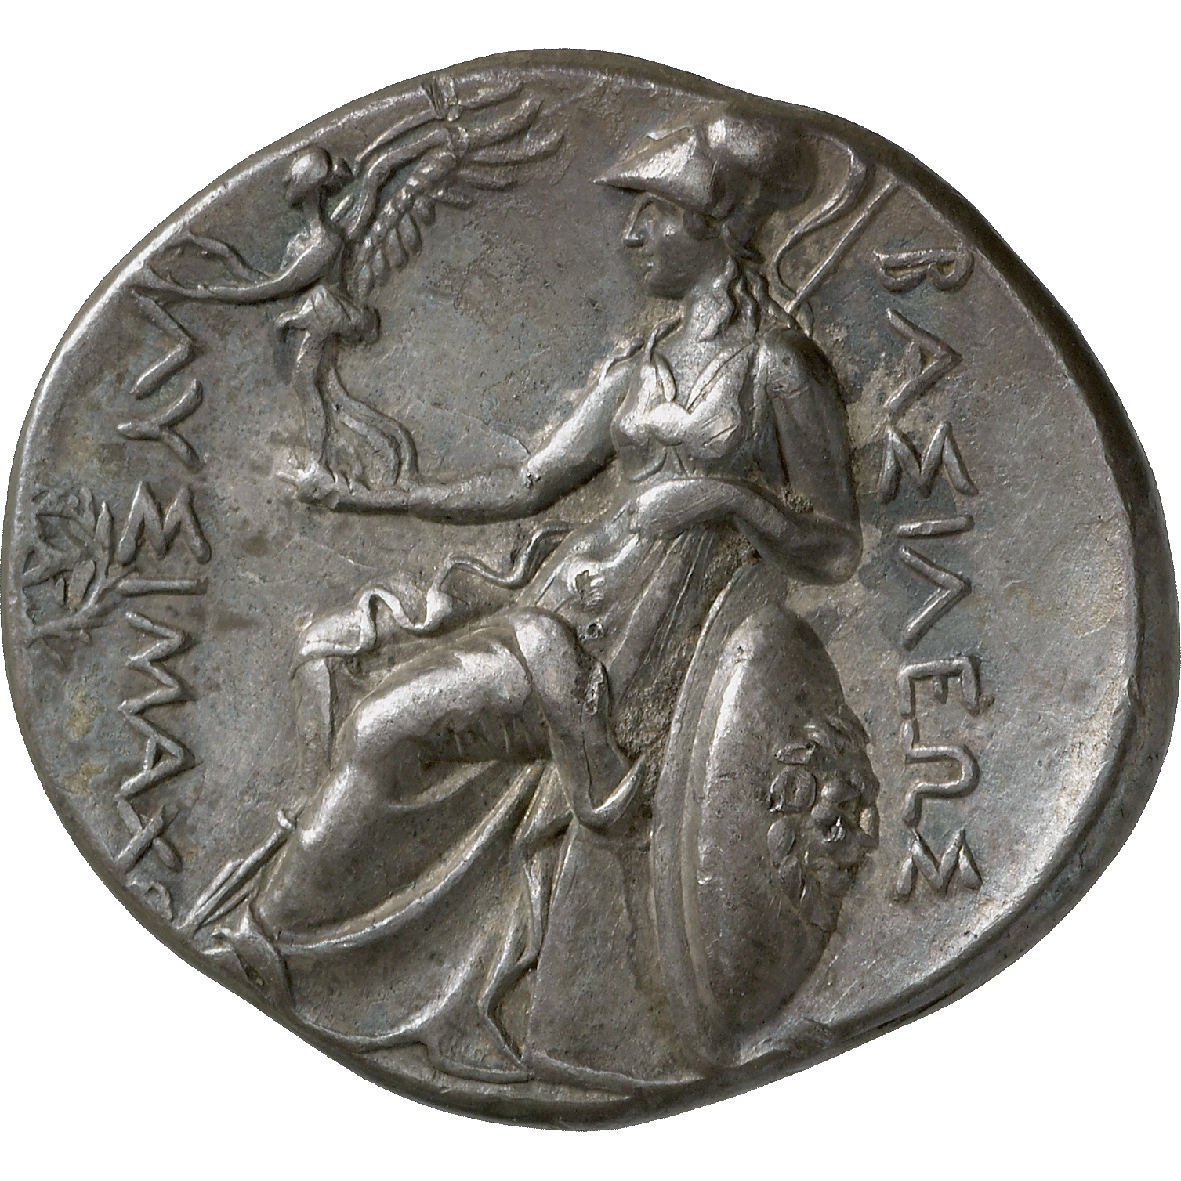 Kingdom of Thrace, Lysimachus, Tetradrachm (reverse)